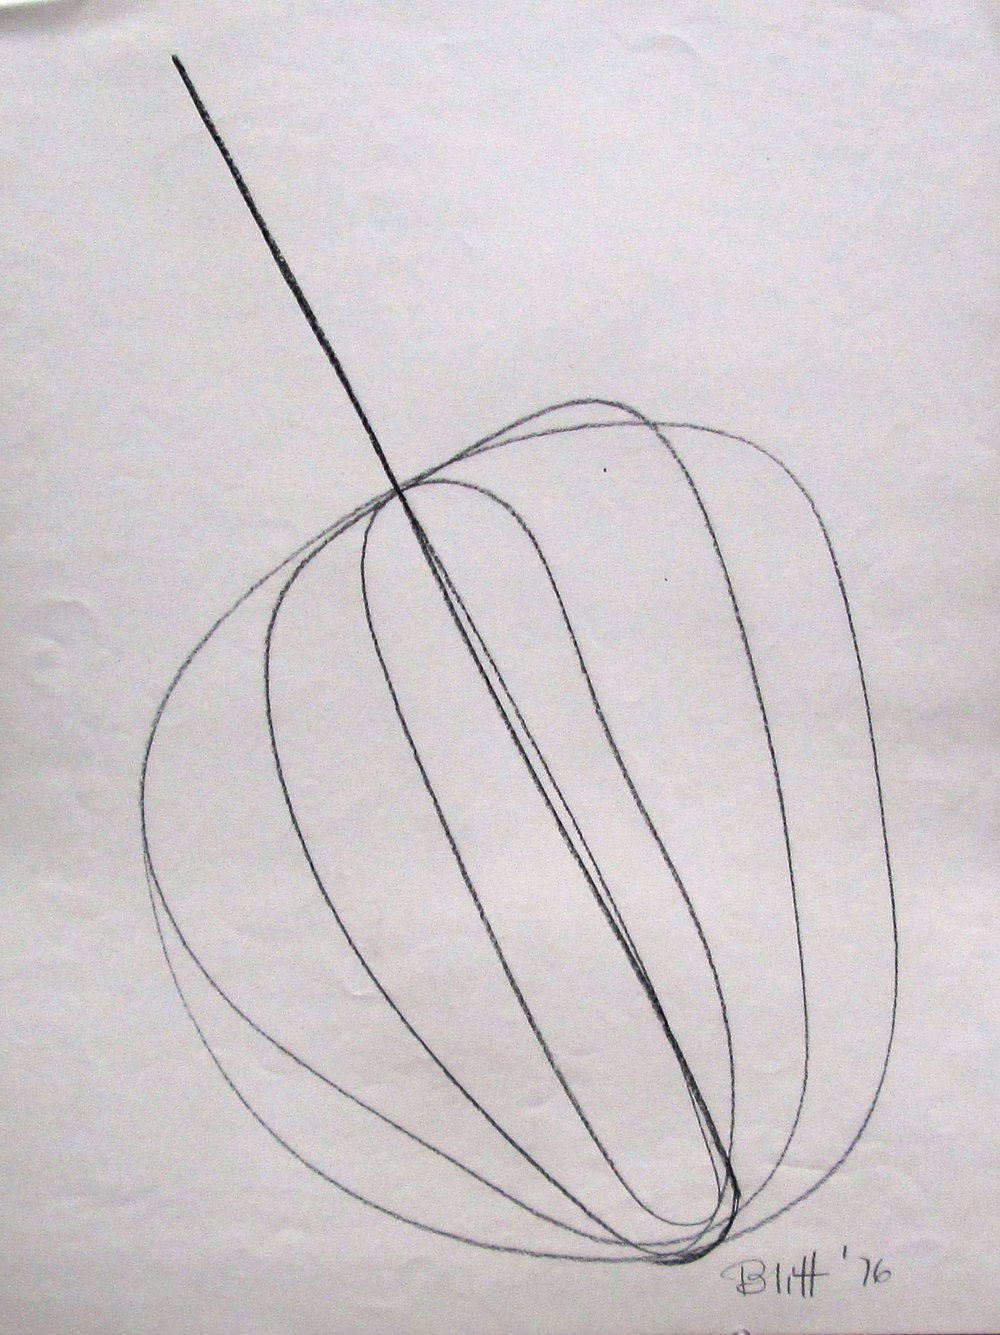 1976.0009 1976, conte crayon on paper, 24x18 in